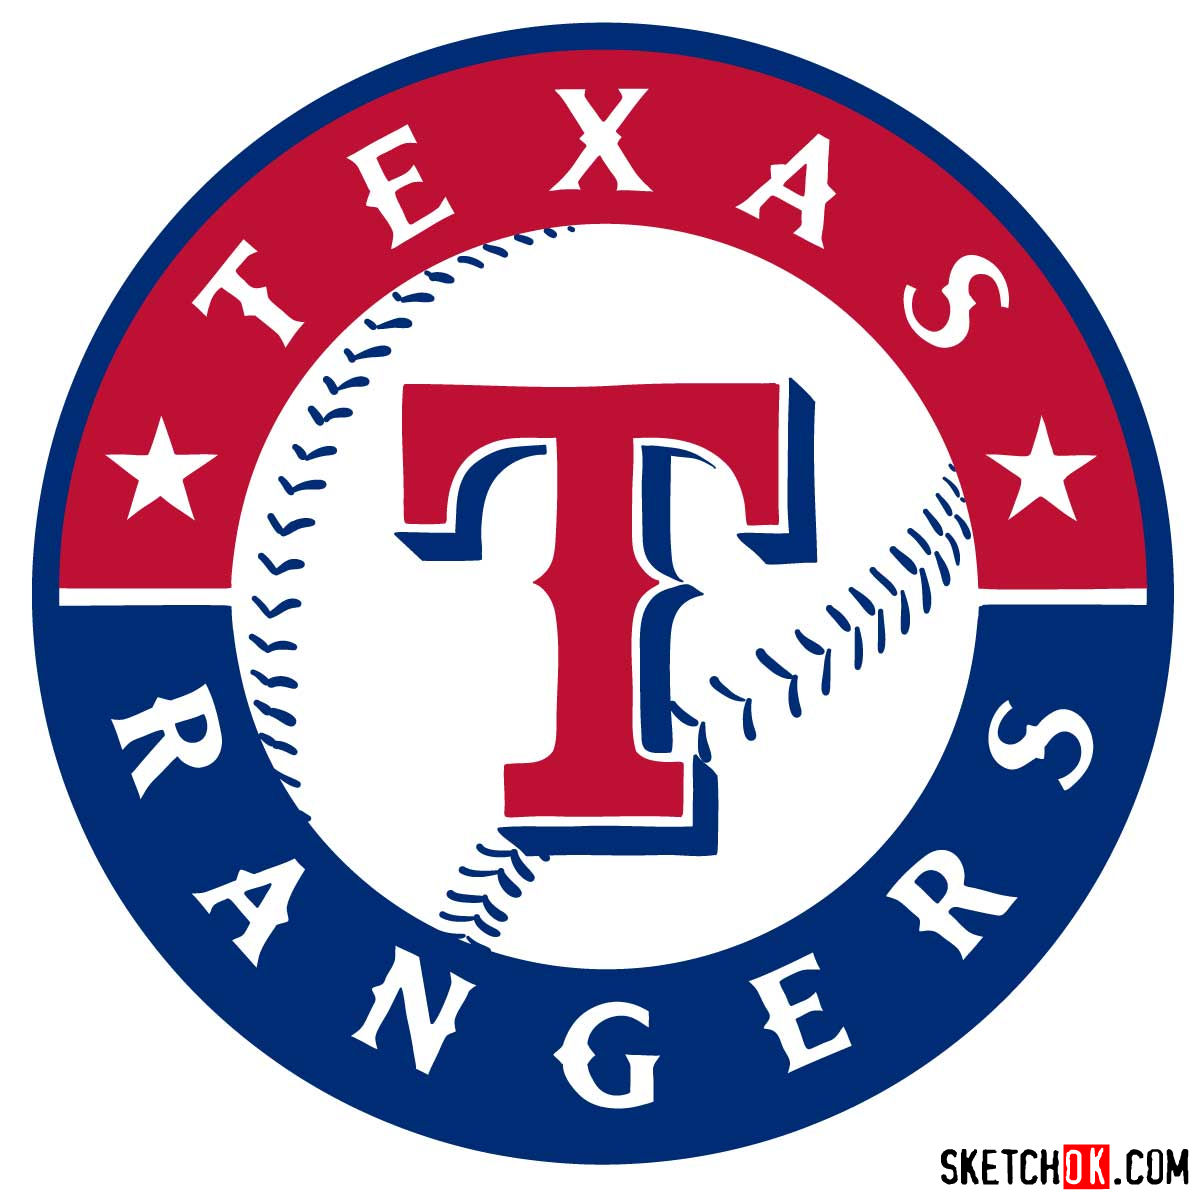 How to draw Texas Rangers logo | MLB logos